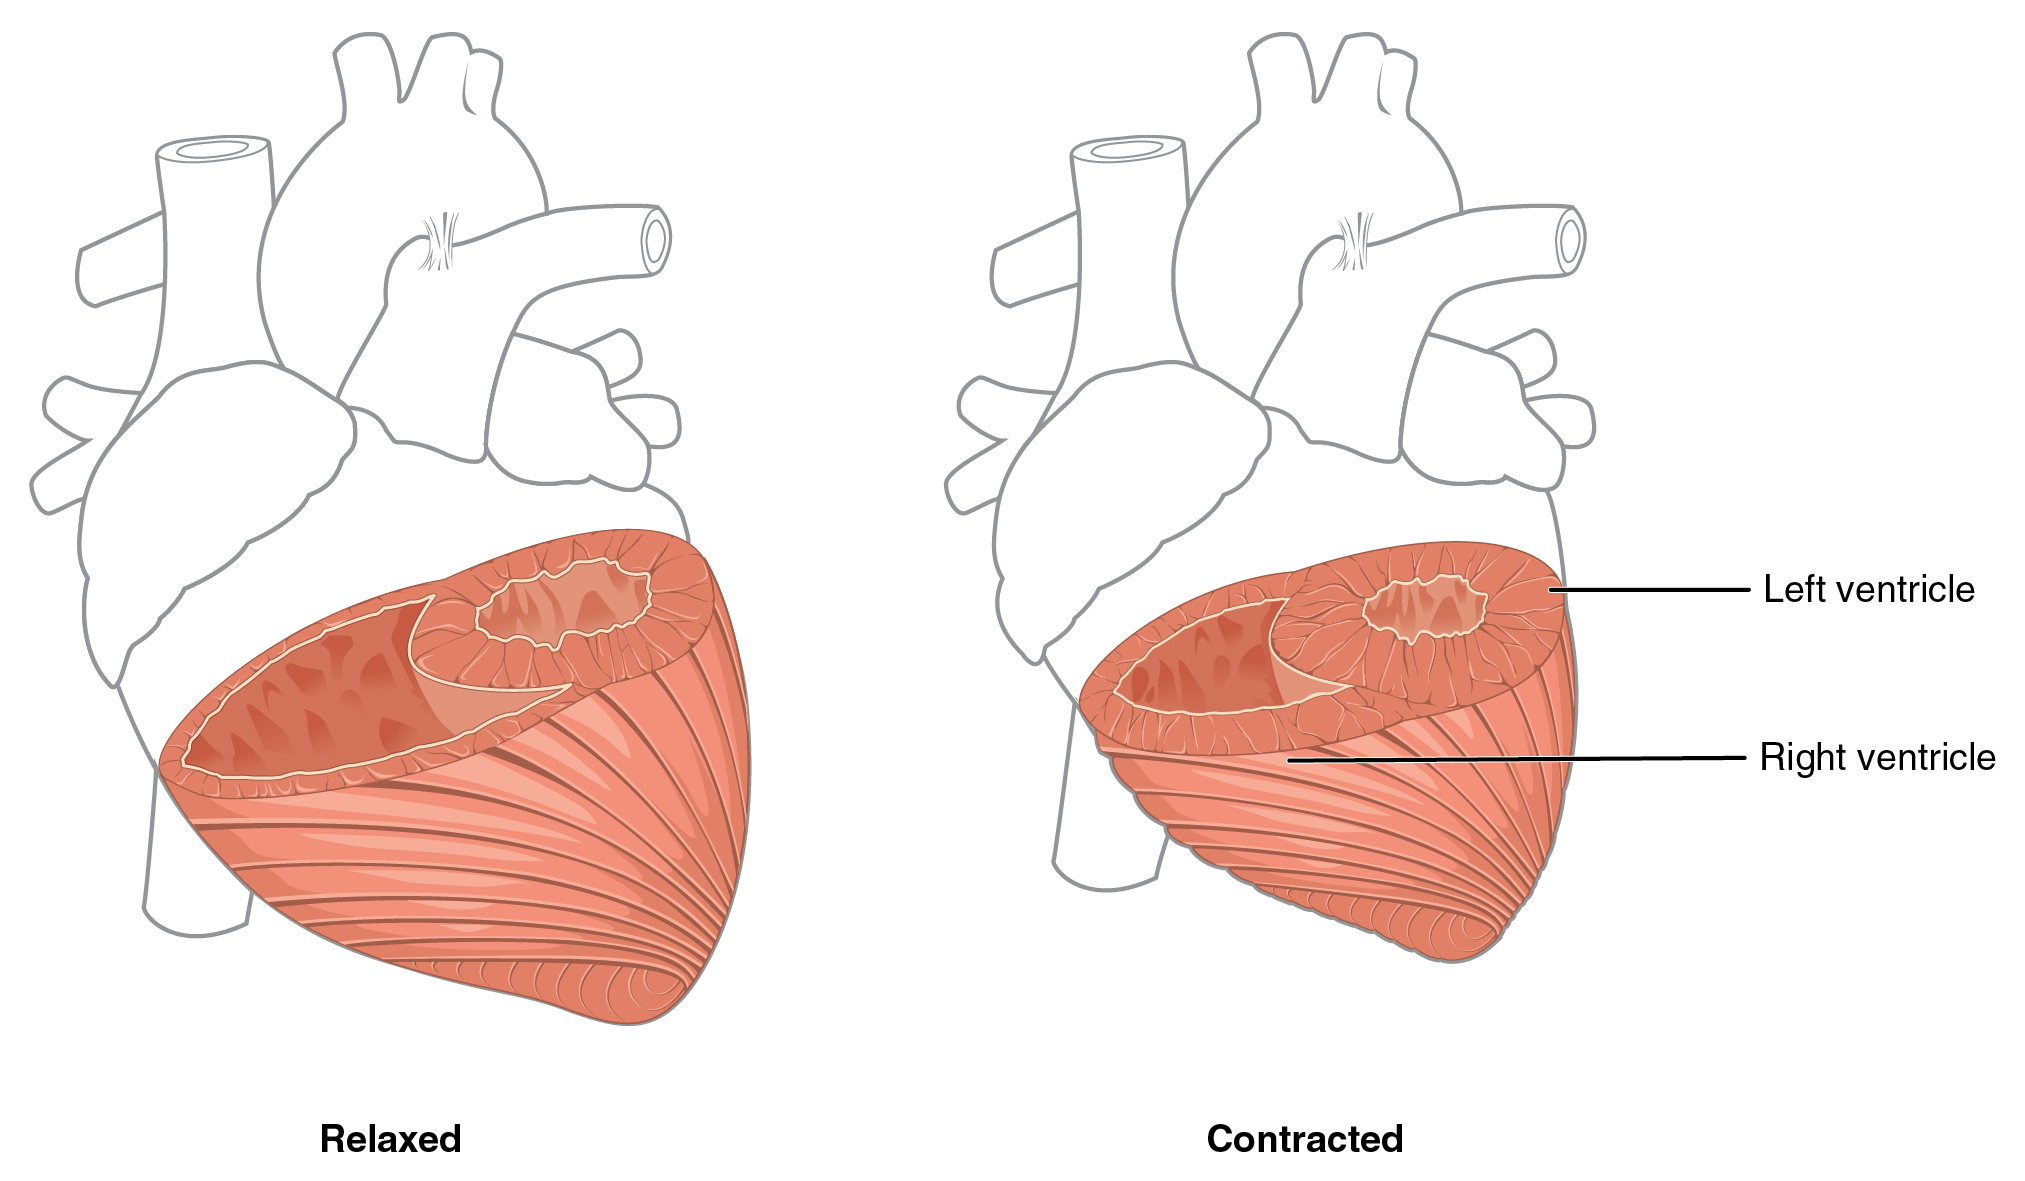 Relaxed And Contracting Blood Vessels Heart